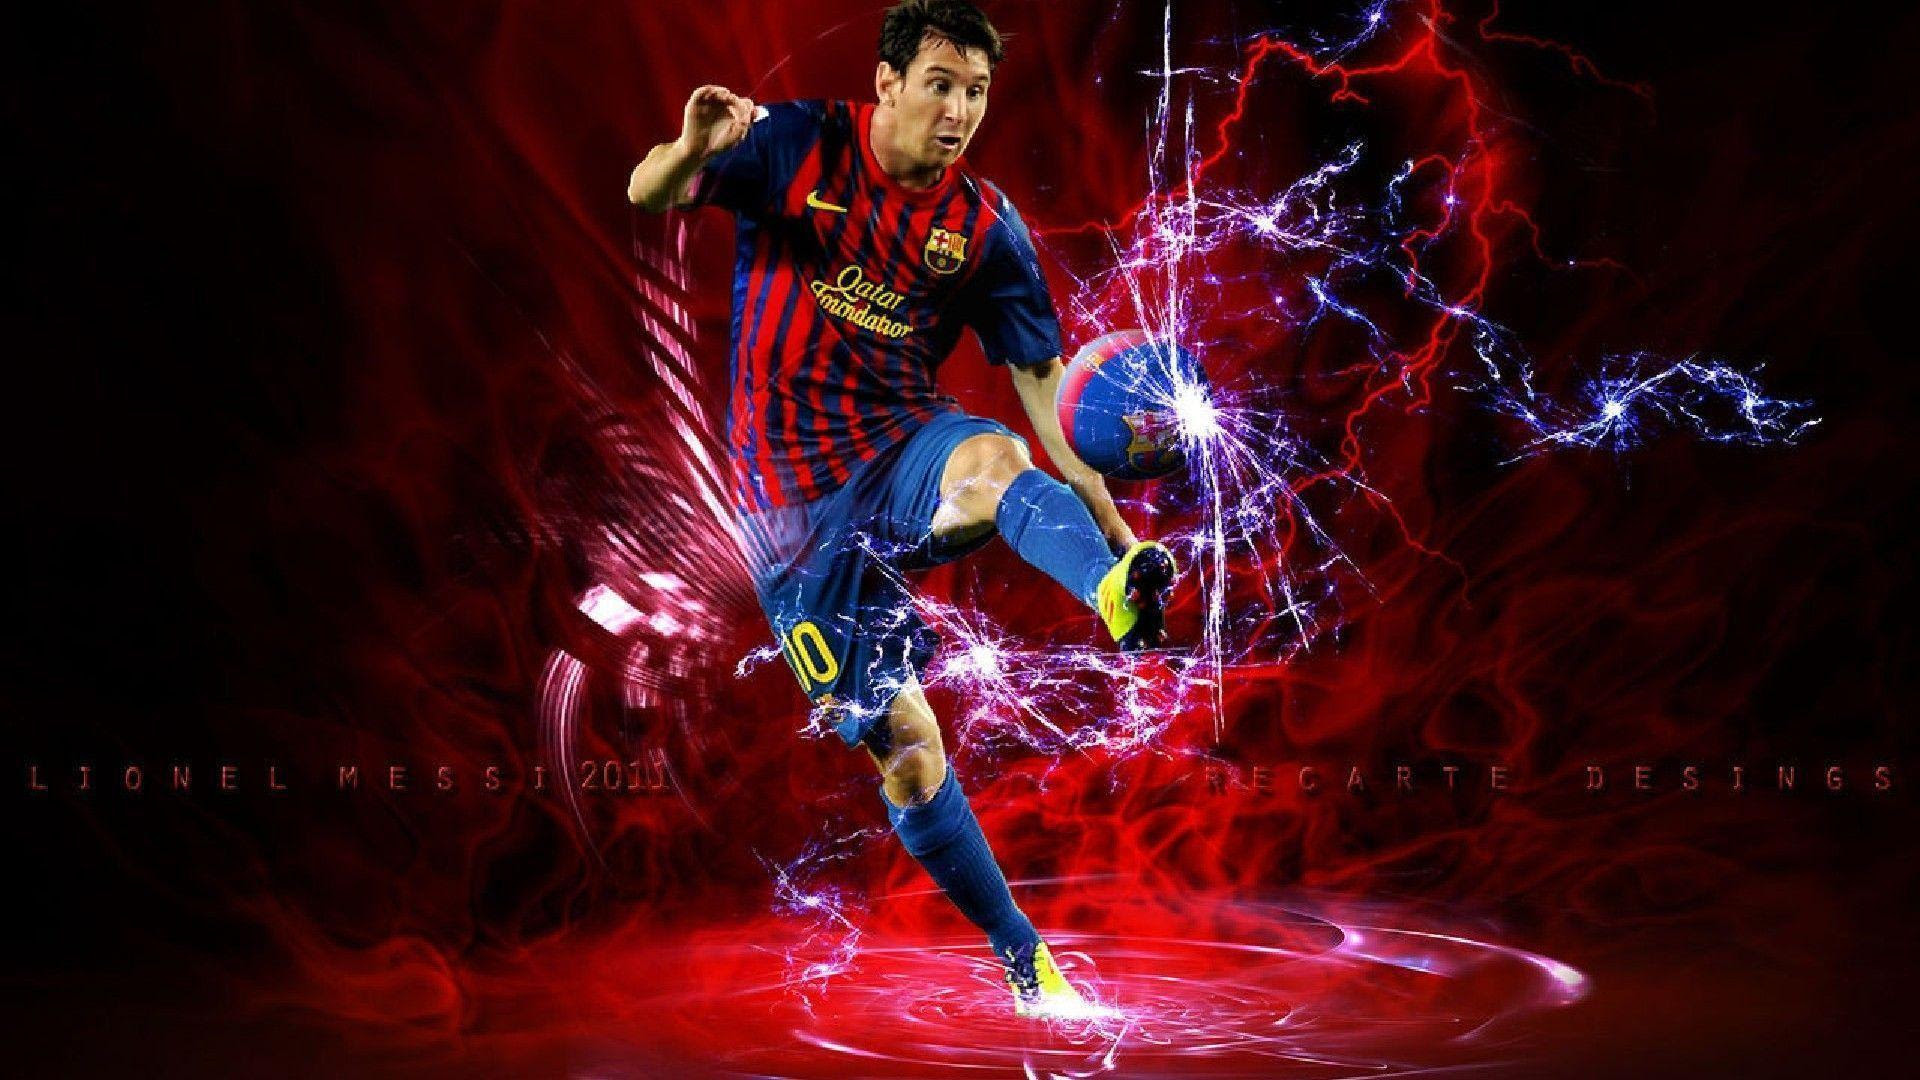 Lionel Messi 2015 1080p HD Wallpapers  Wallpaper Cave